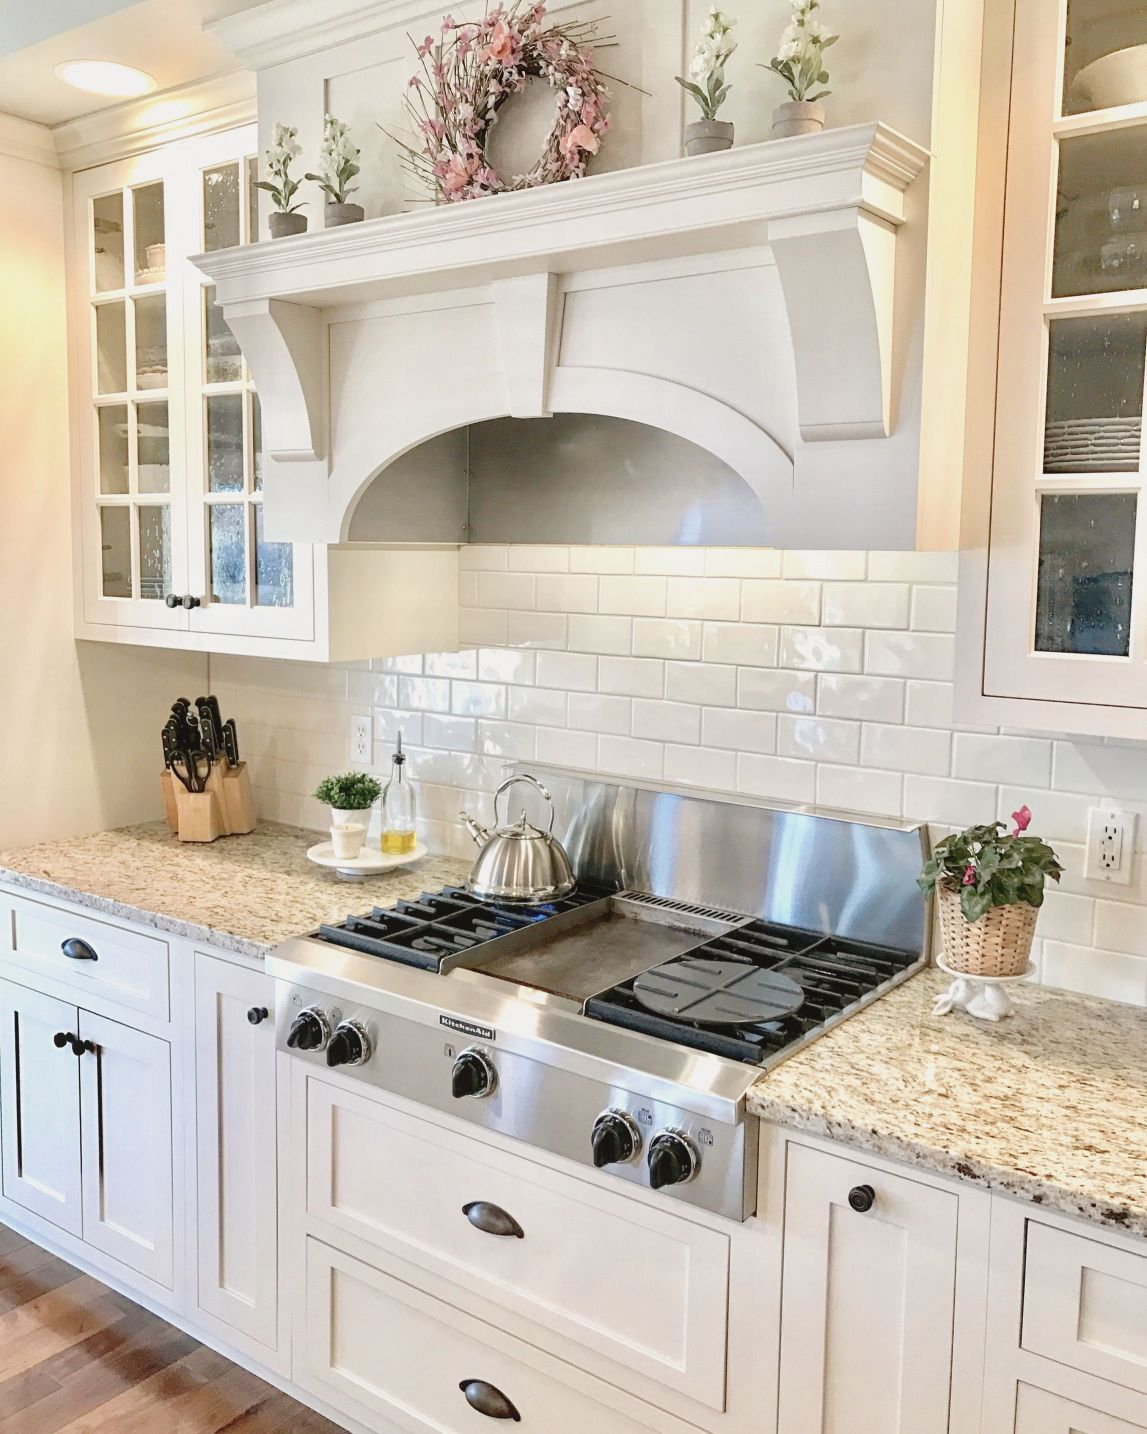 2019 Dover White Kitchen Cabinets Ideas For Kitchen Layouts Check More At Http Www Antique White Kitchen Kitchen Cabinet Design Off White Kitchen Cabinets